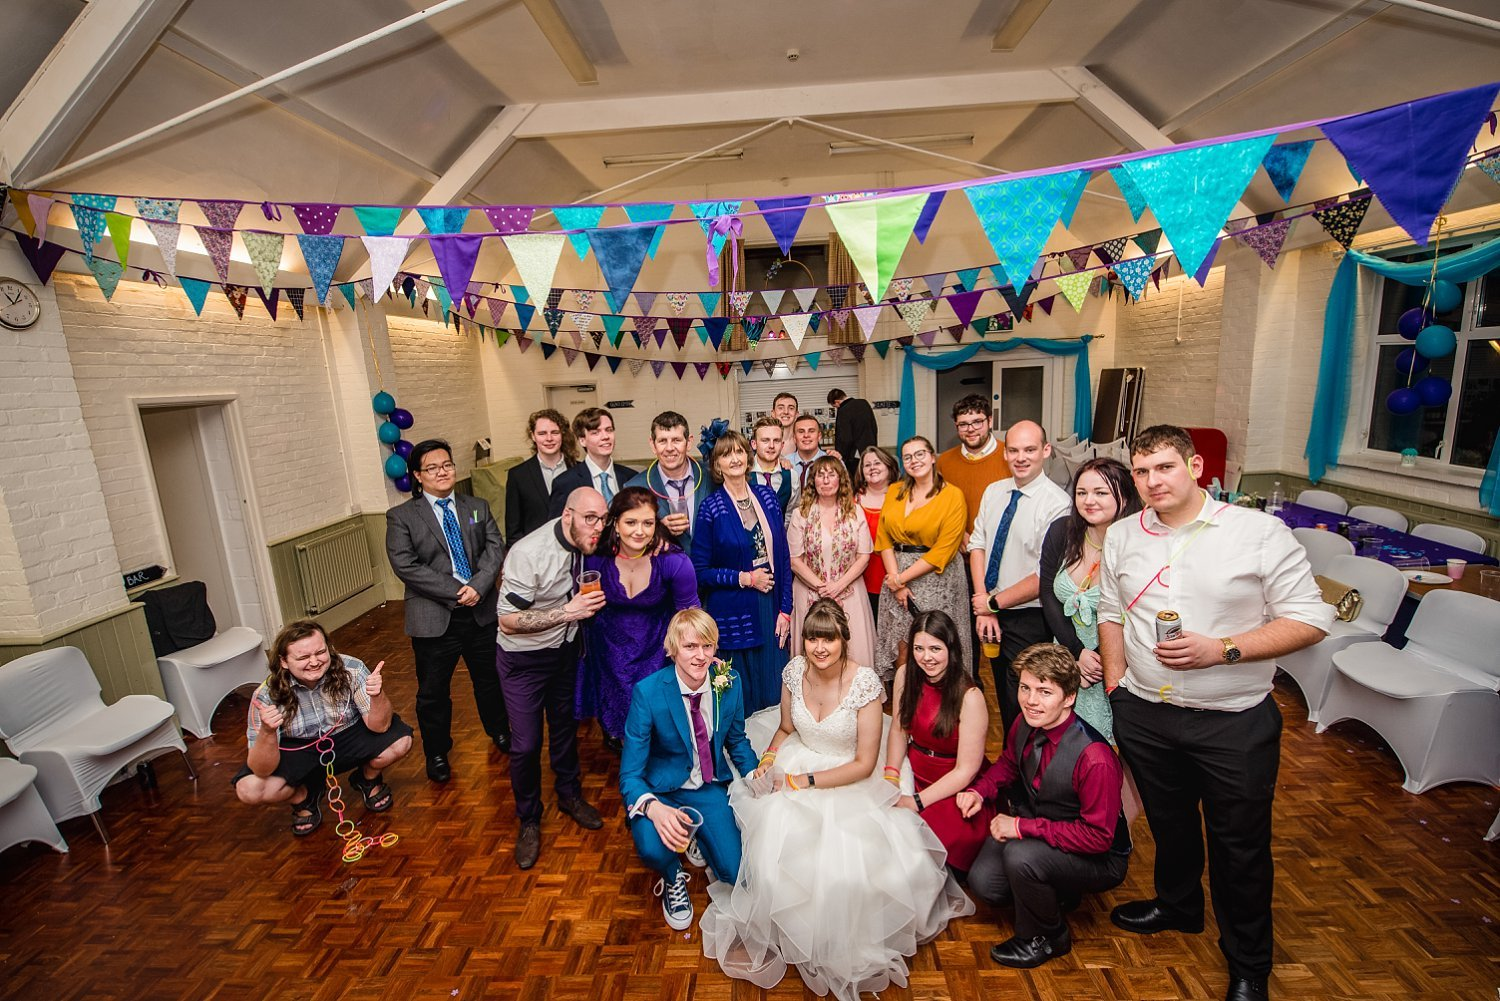 one of the last photos from the wedding day. big group photo on the dancefloor - Petersfield Wedding Photography